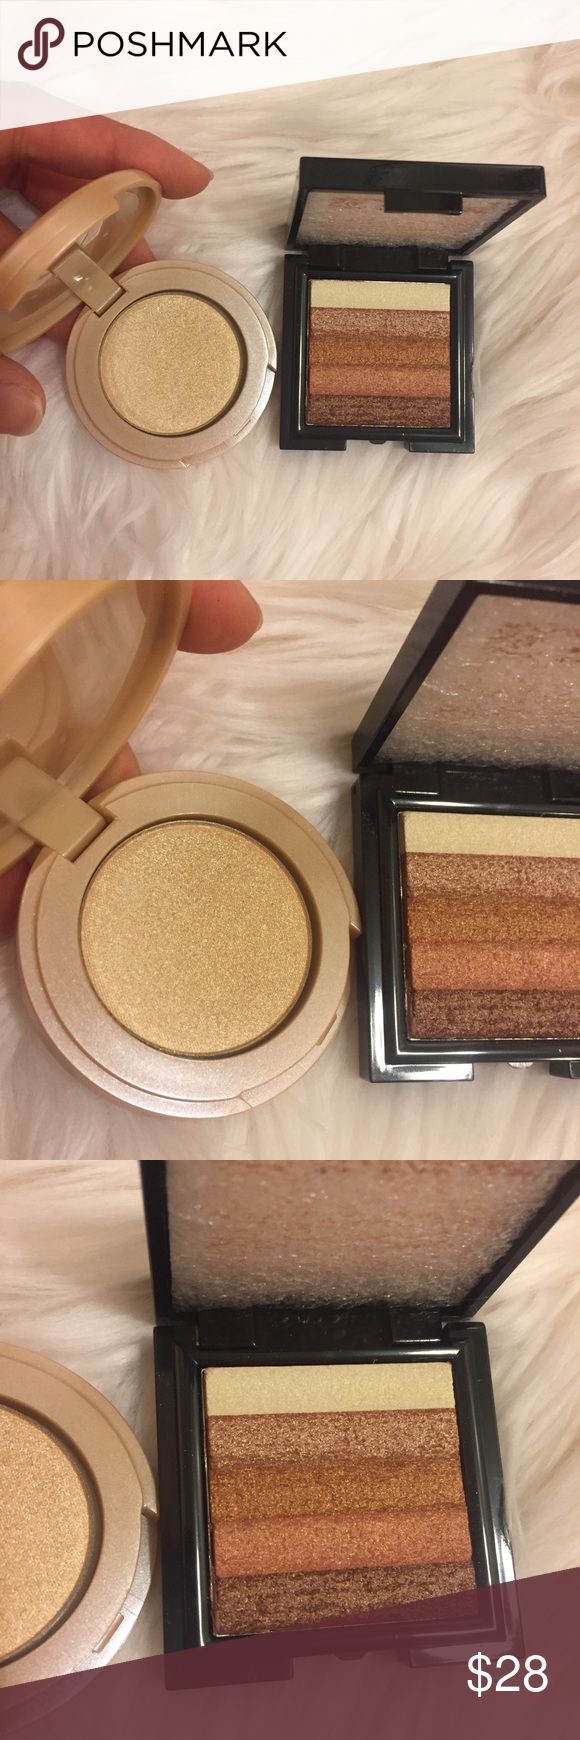 Tarte highlighter, Bobbi brown shimmer brick Travel size bundle. Never used new. Authentic from Sephora set purchase. No trades. tarte Makeup Bronzer